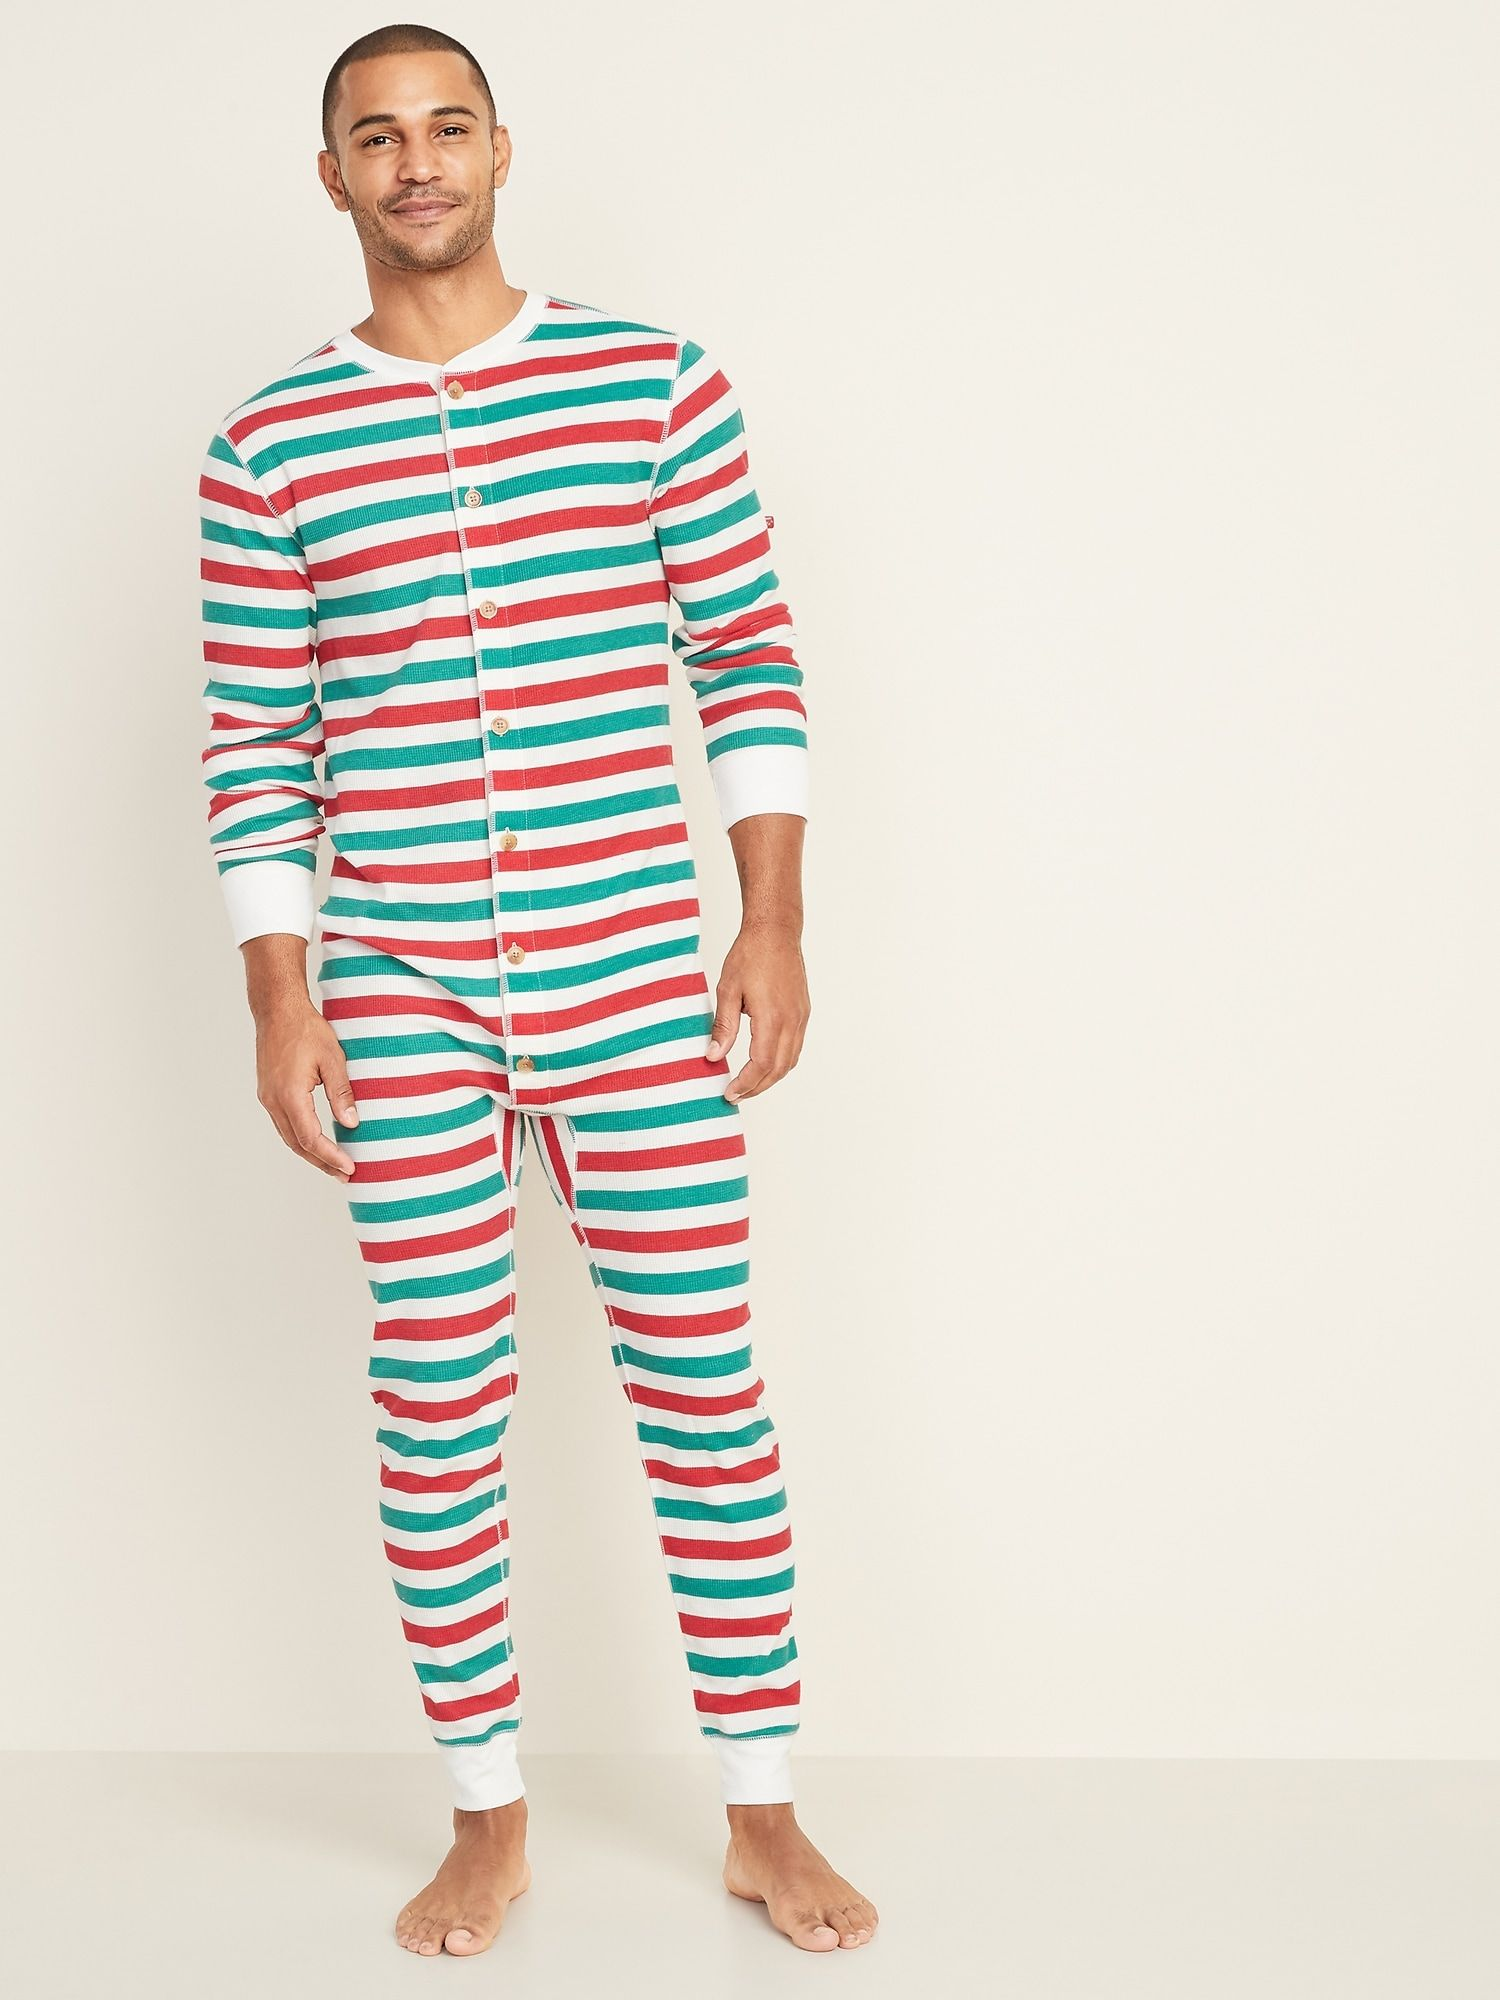 ThermalKnit Union Suit OnePiece Pajamas for Men Old